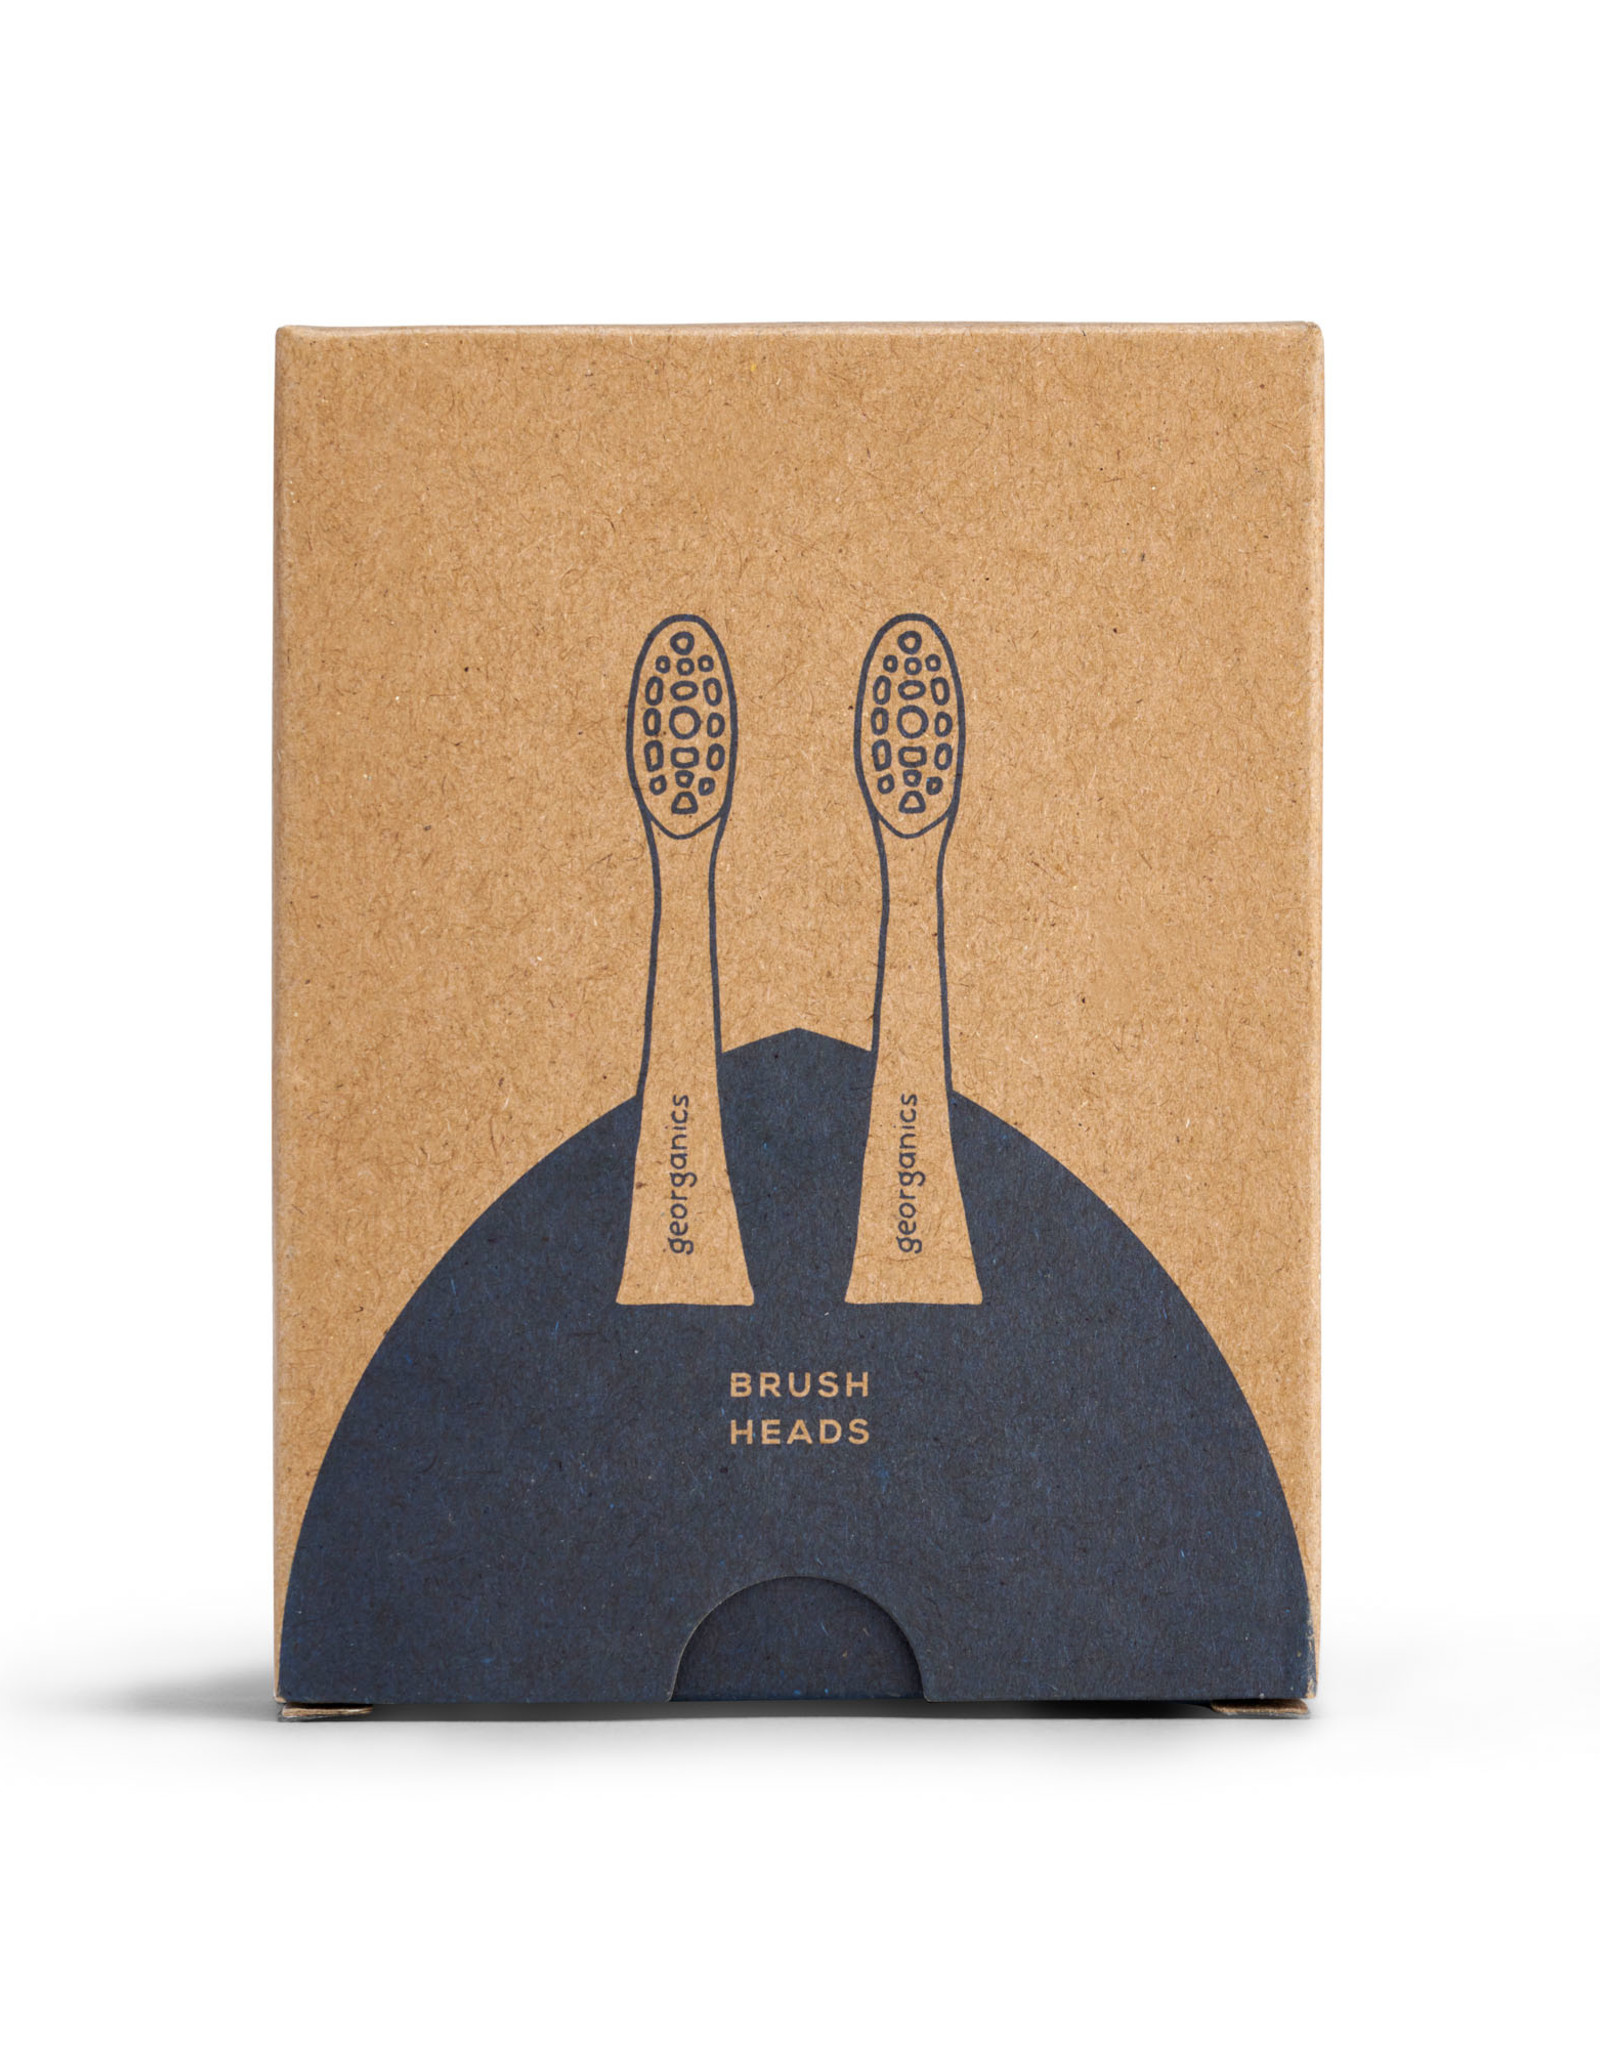 Brush heads for electric toothbrush